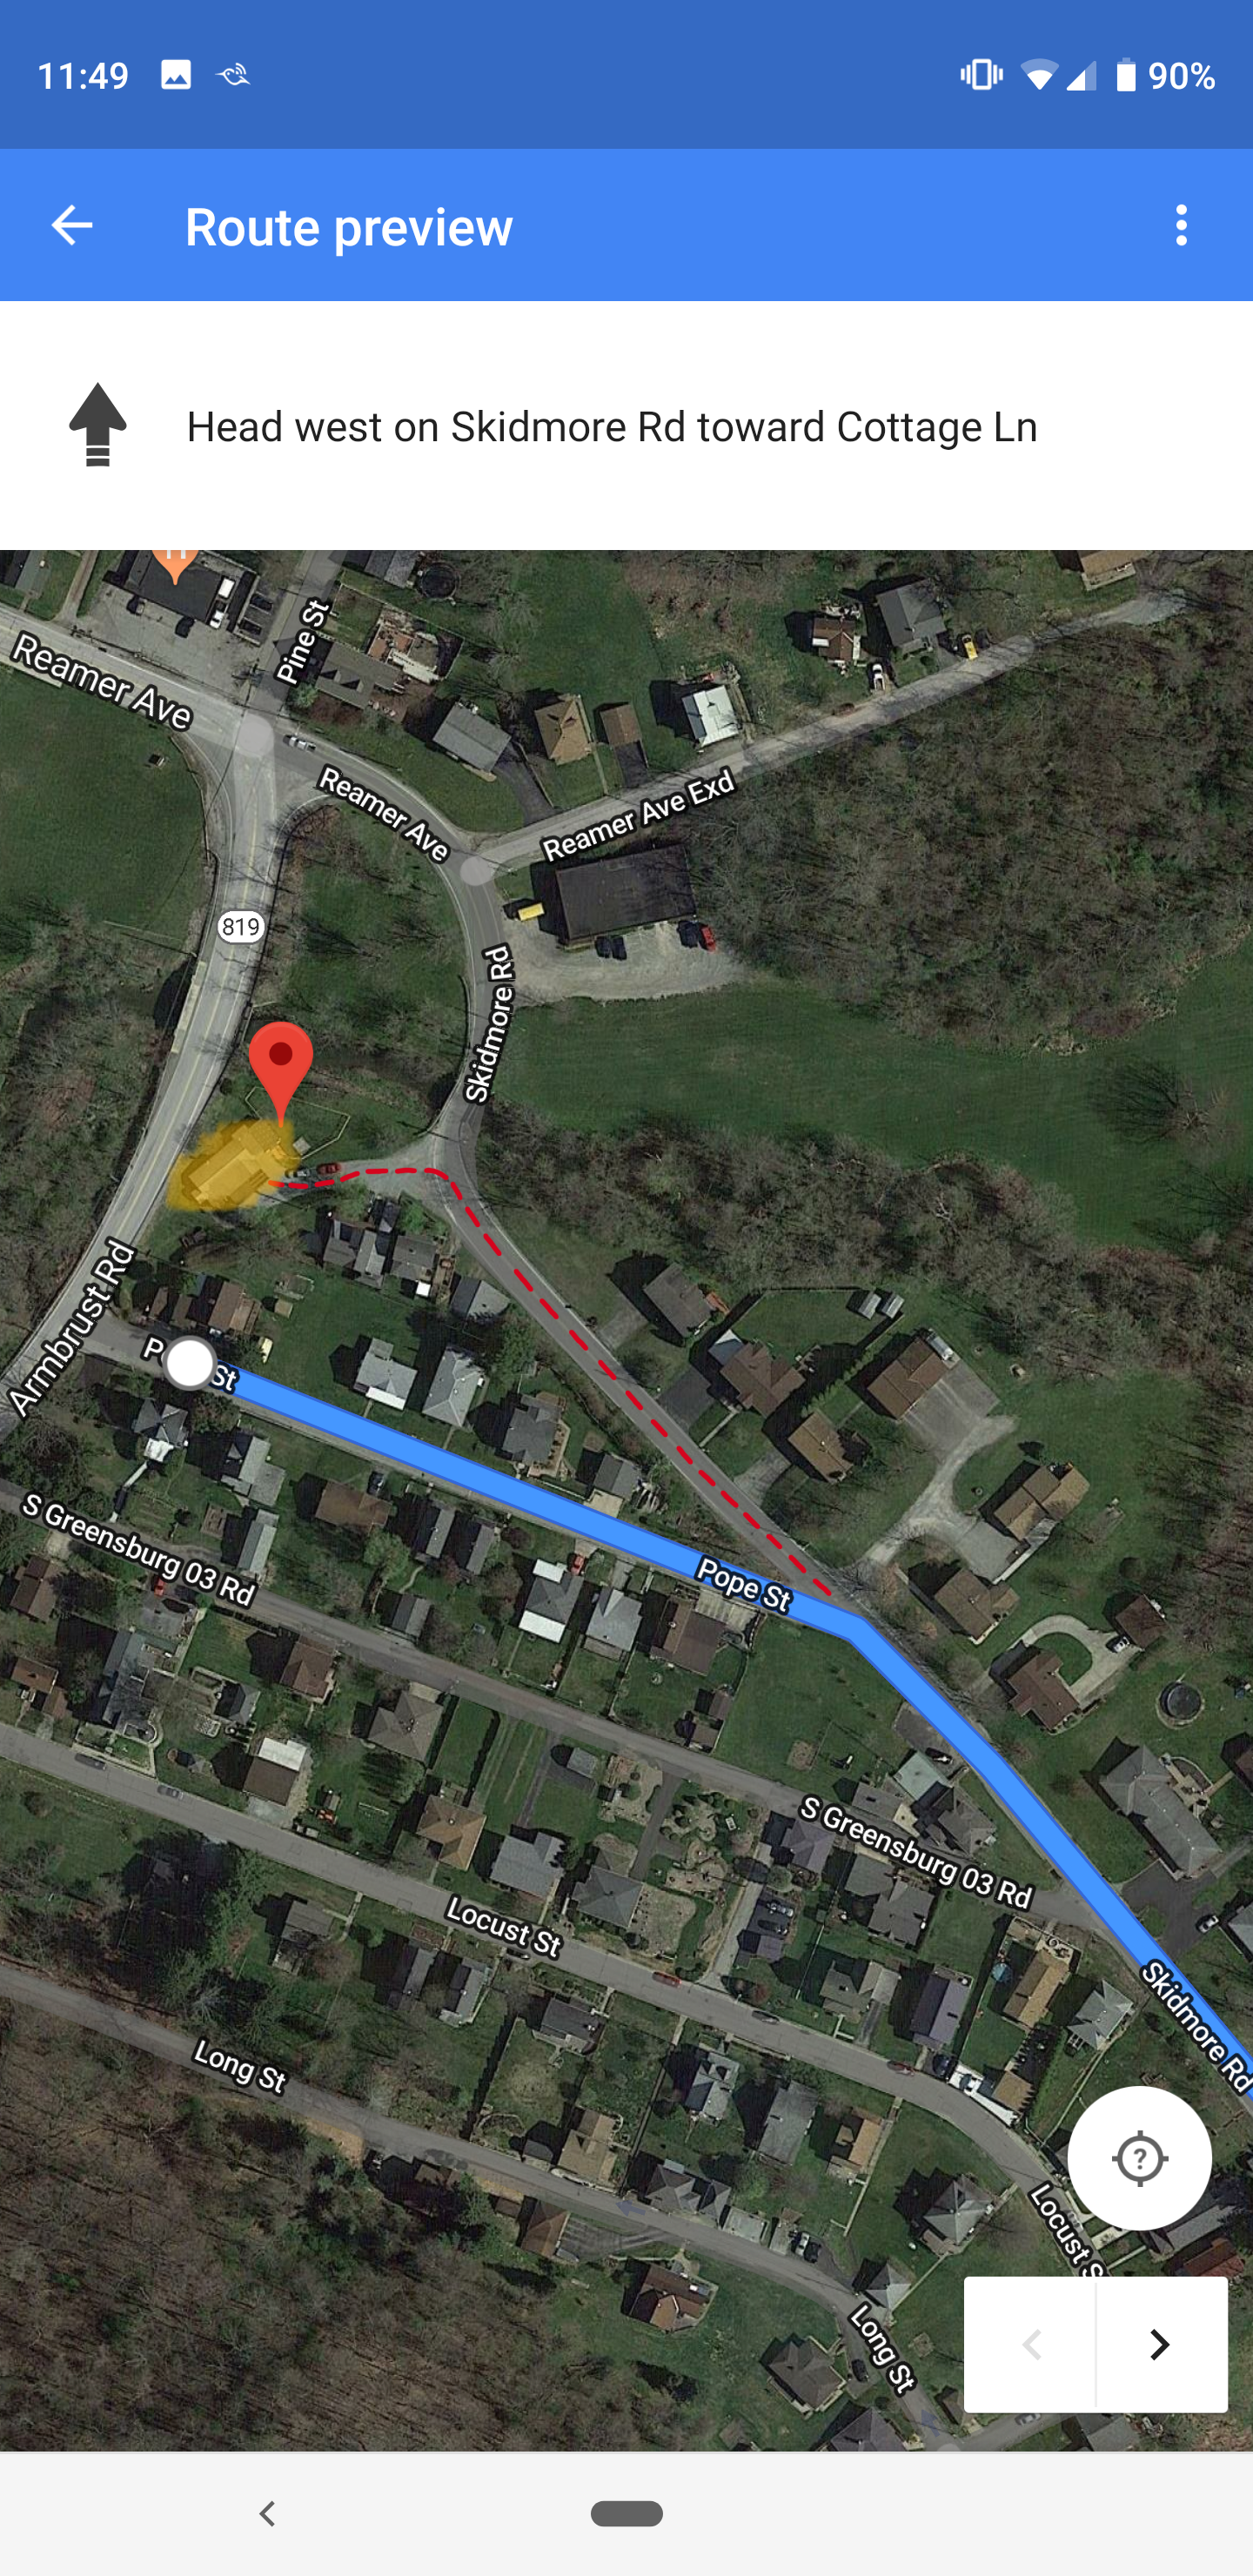 How To Fix Directions To My Home Showing Incorrectly Google Maps Community